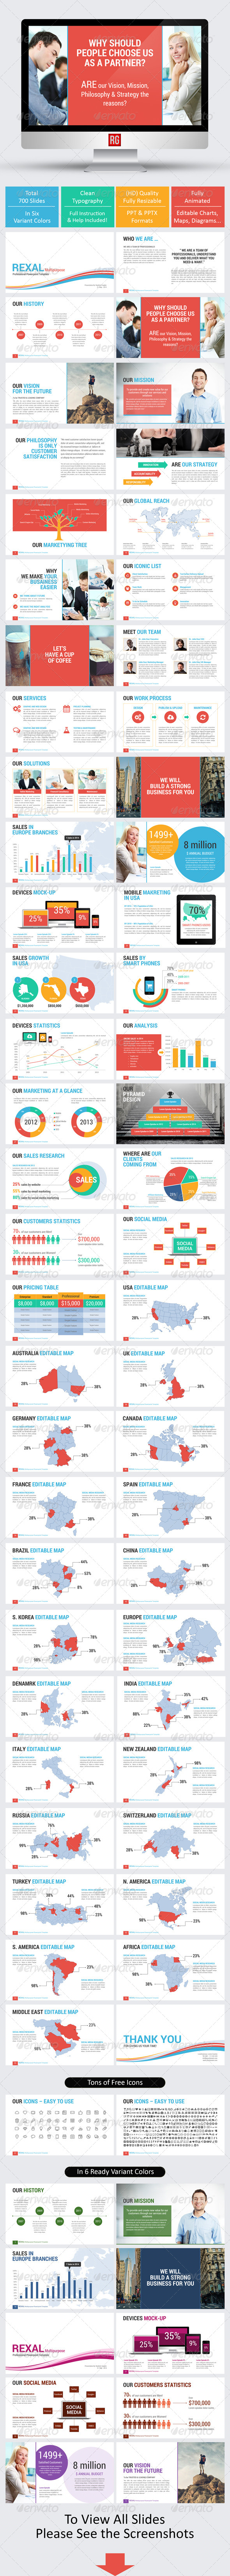 GraphicRiver Rexal Multi-purpose Powerpoint Template 7822544